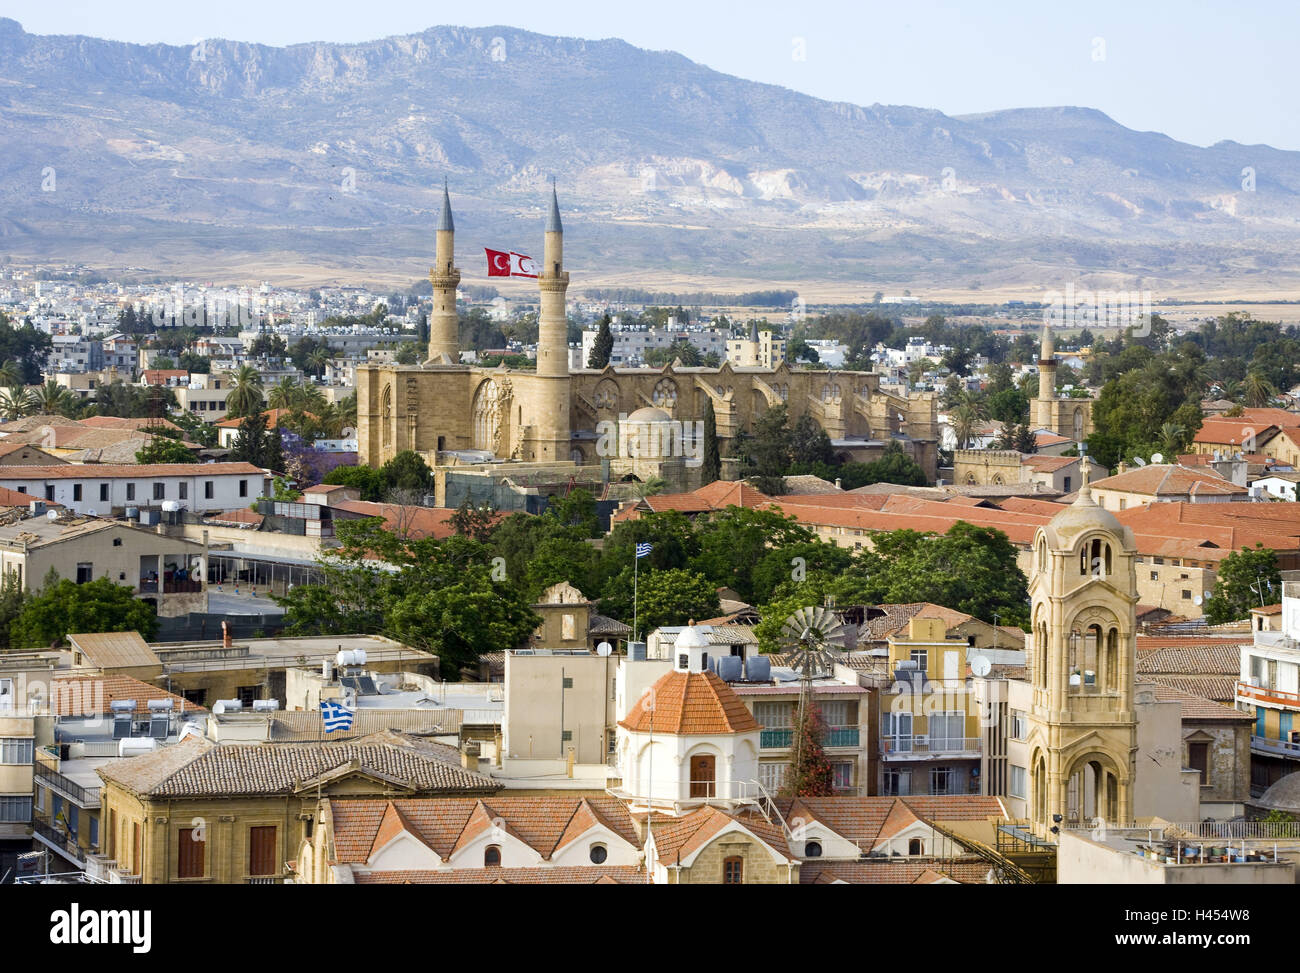 Cyprus, Nicosia, town view, Old Town, steeples, minarets, - Stock Image